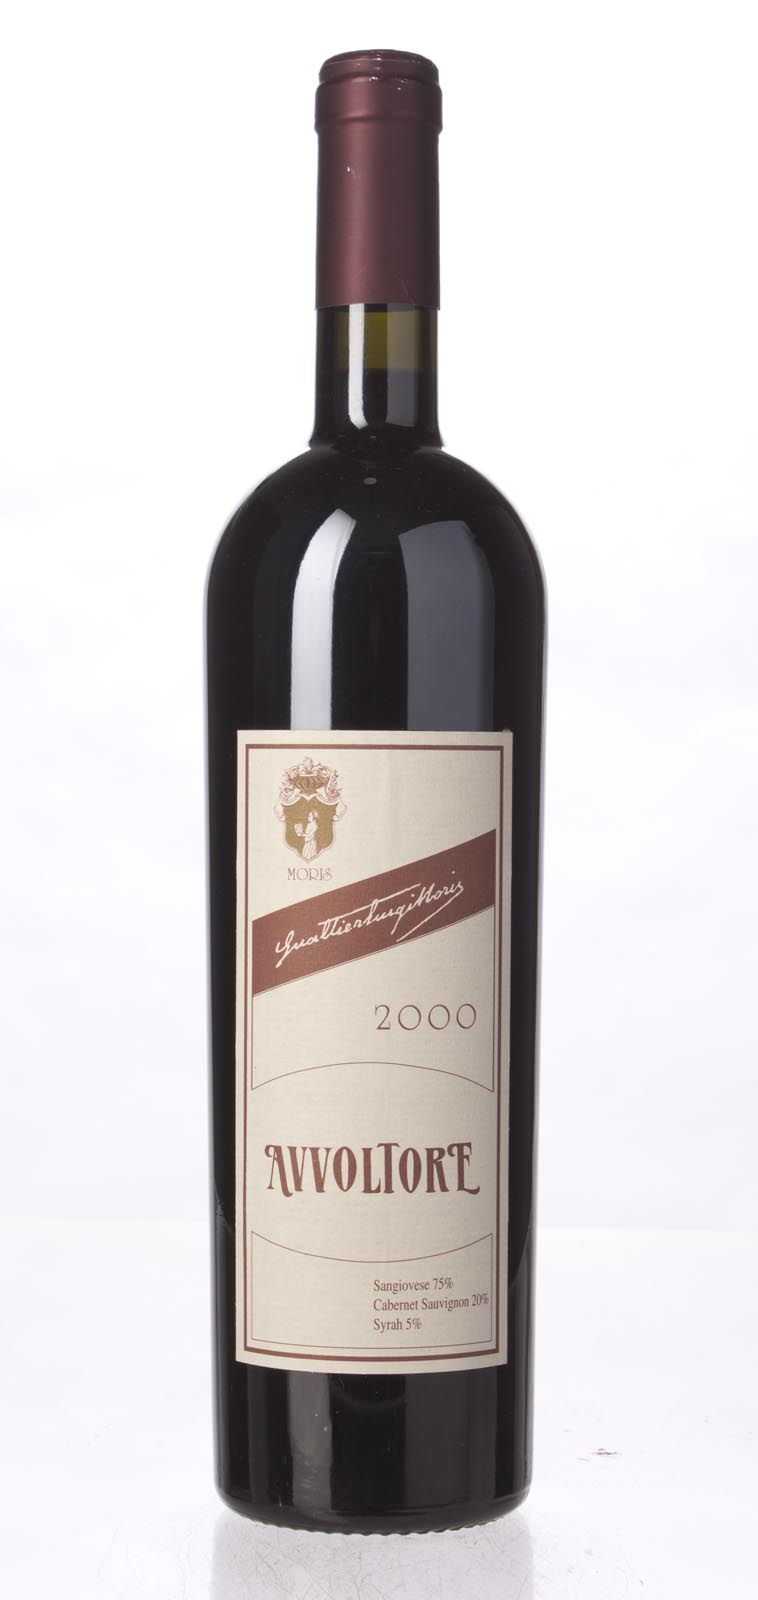 Moris Farms Avvoltore IGT 2000, 750mL (WS91) from The BPW - Merchants of rare and fine wines.